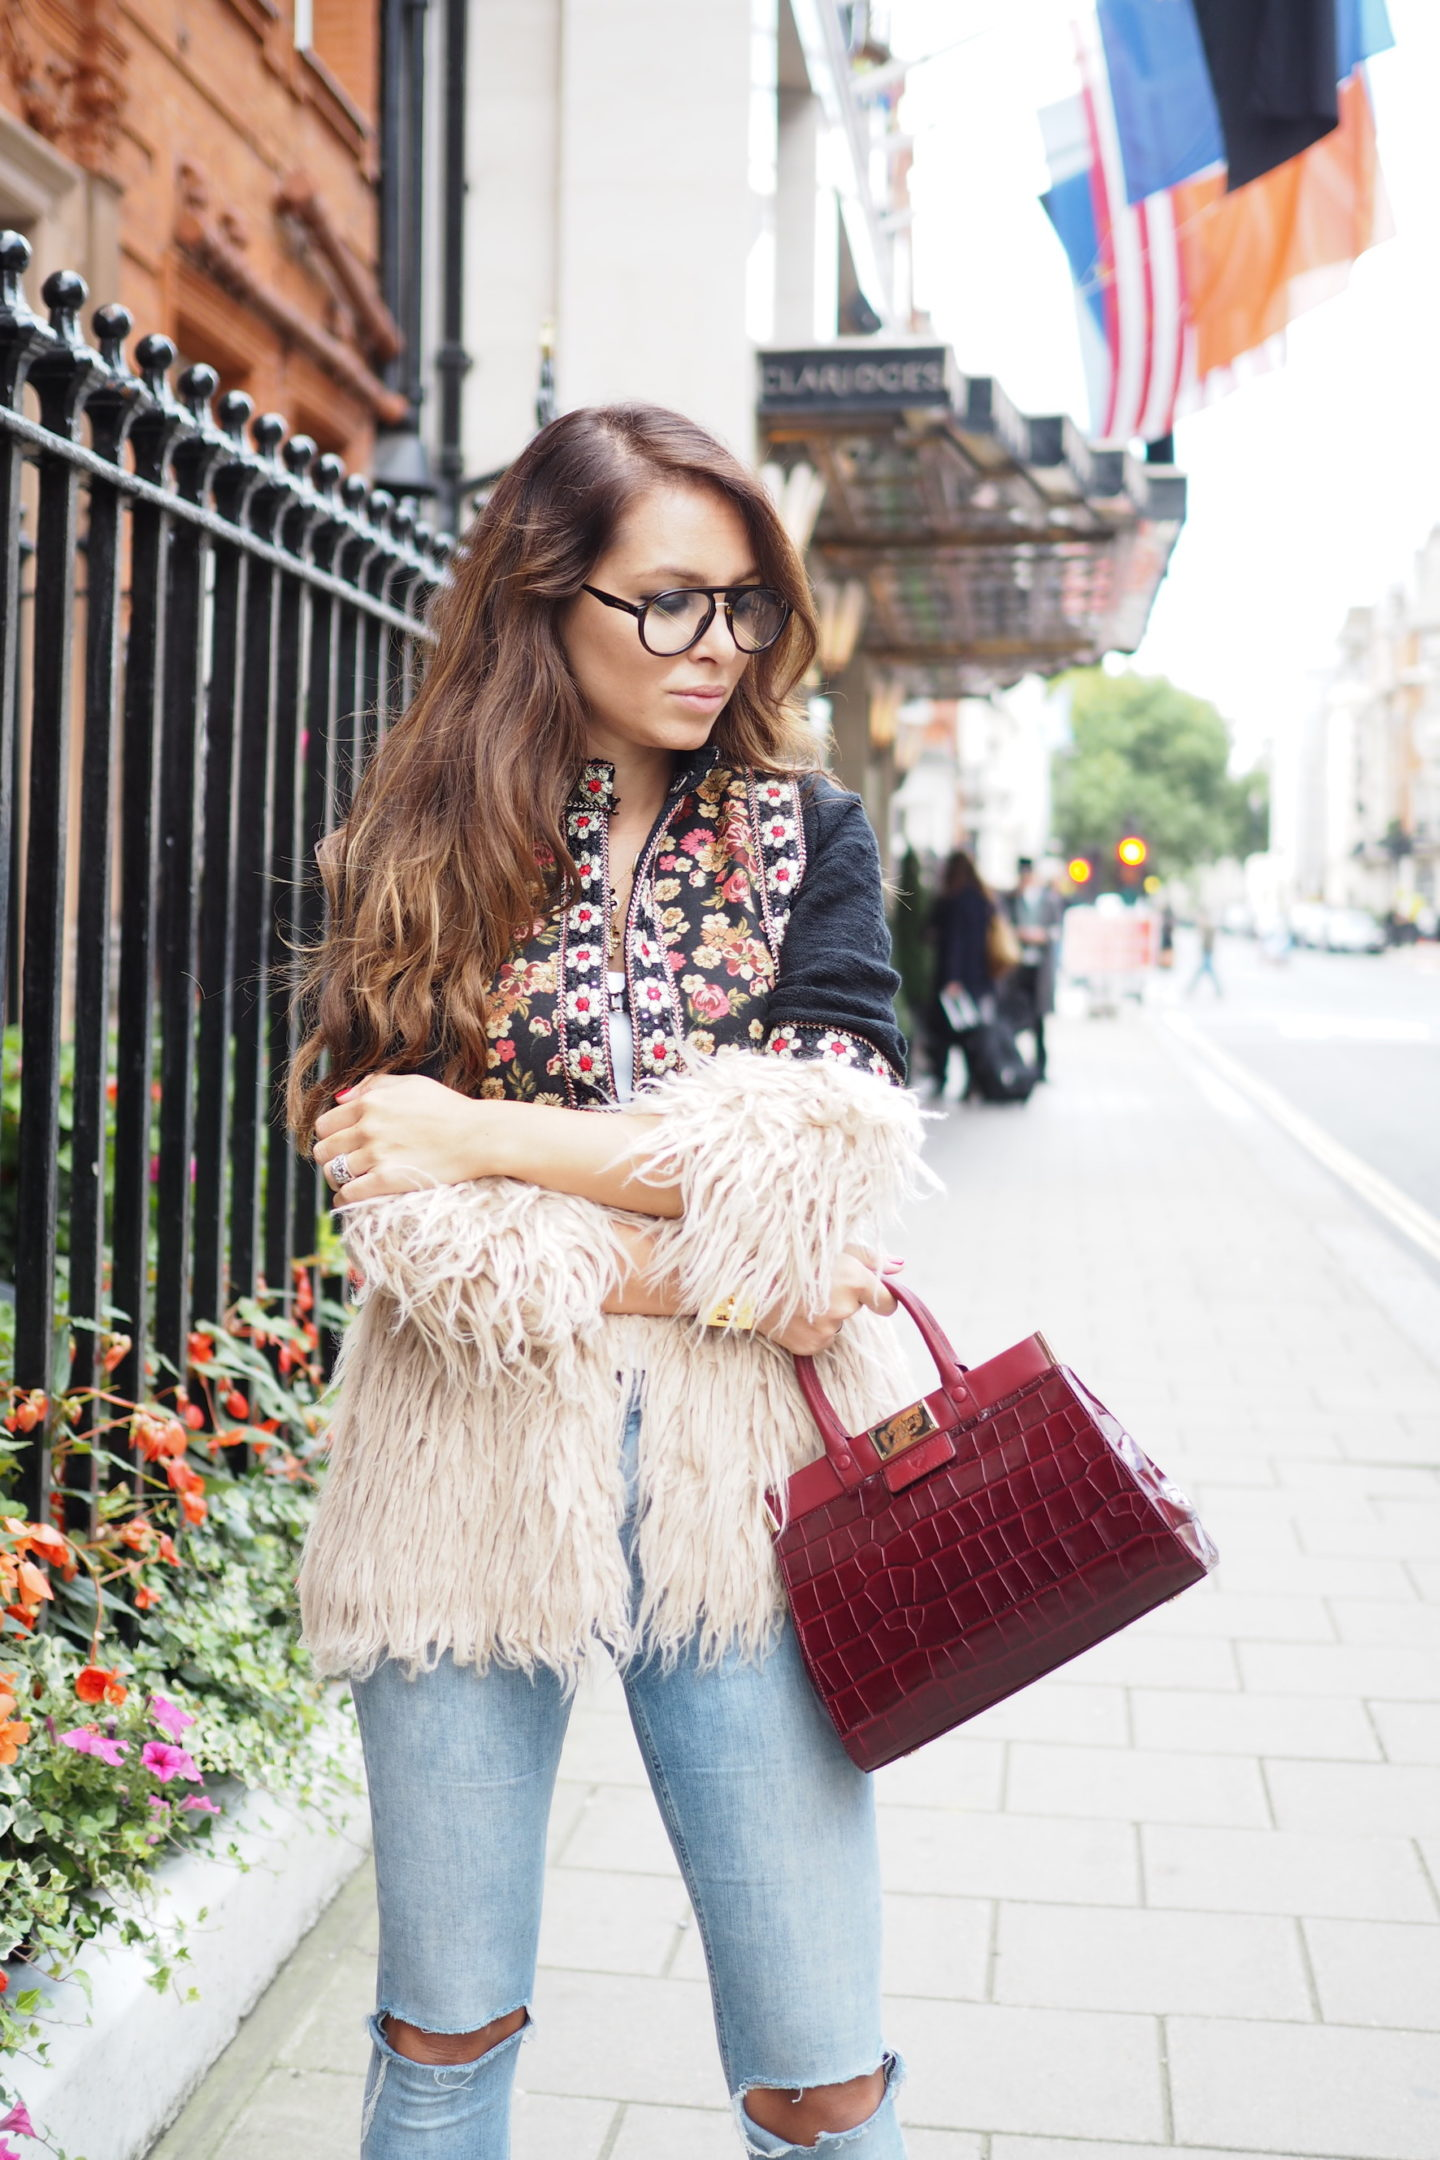 london street style fashion week trands aspinal of london handbag